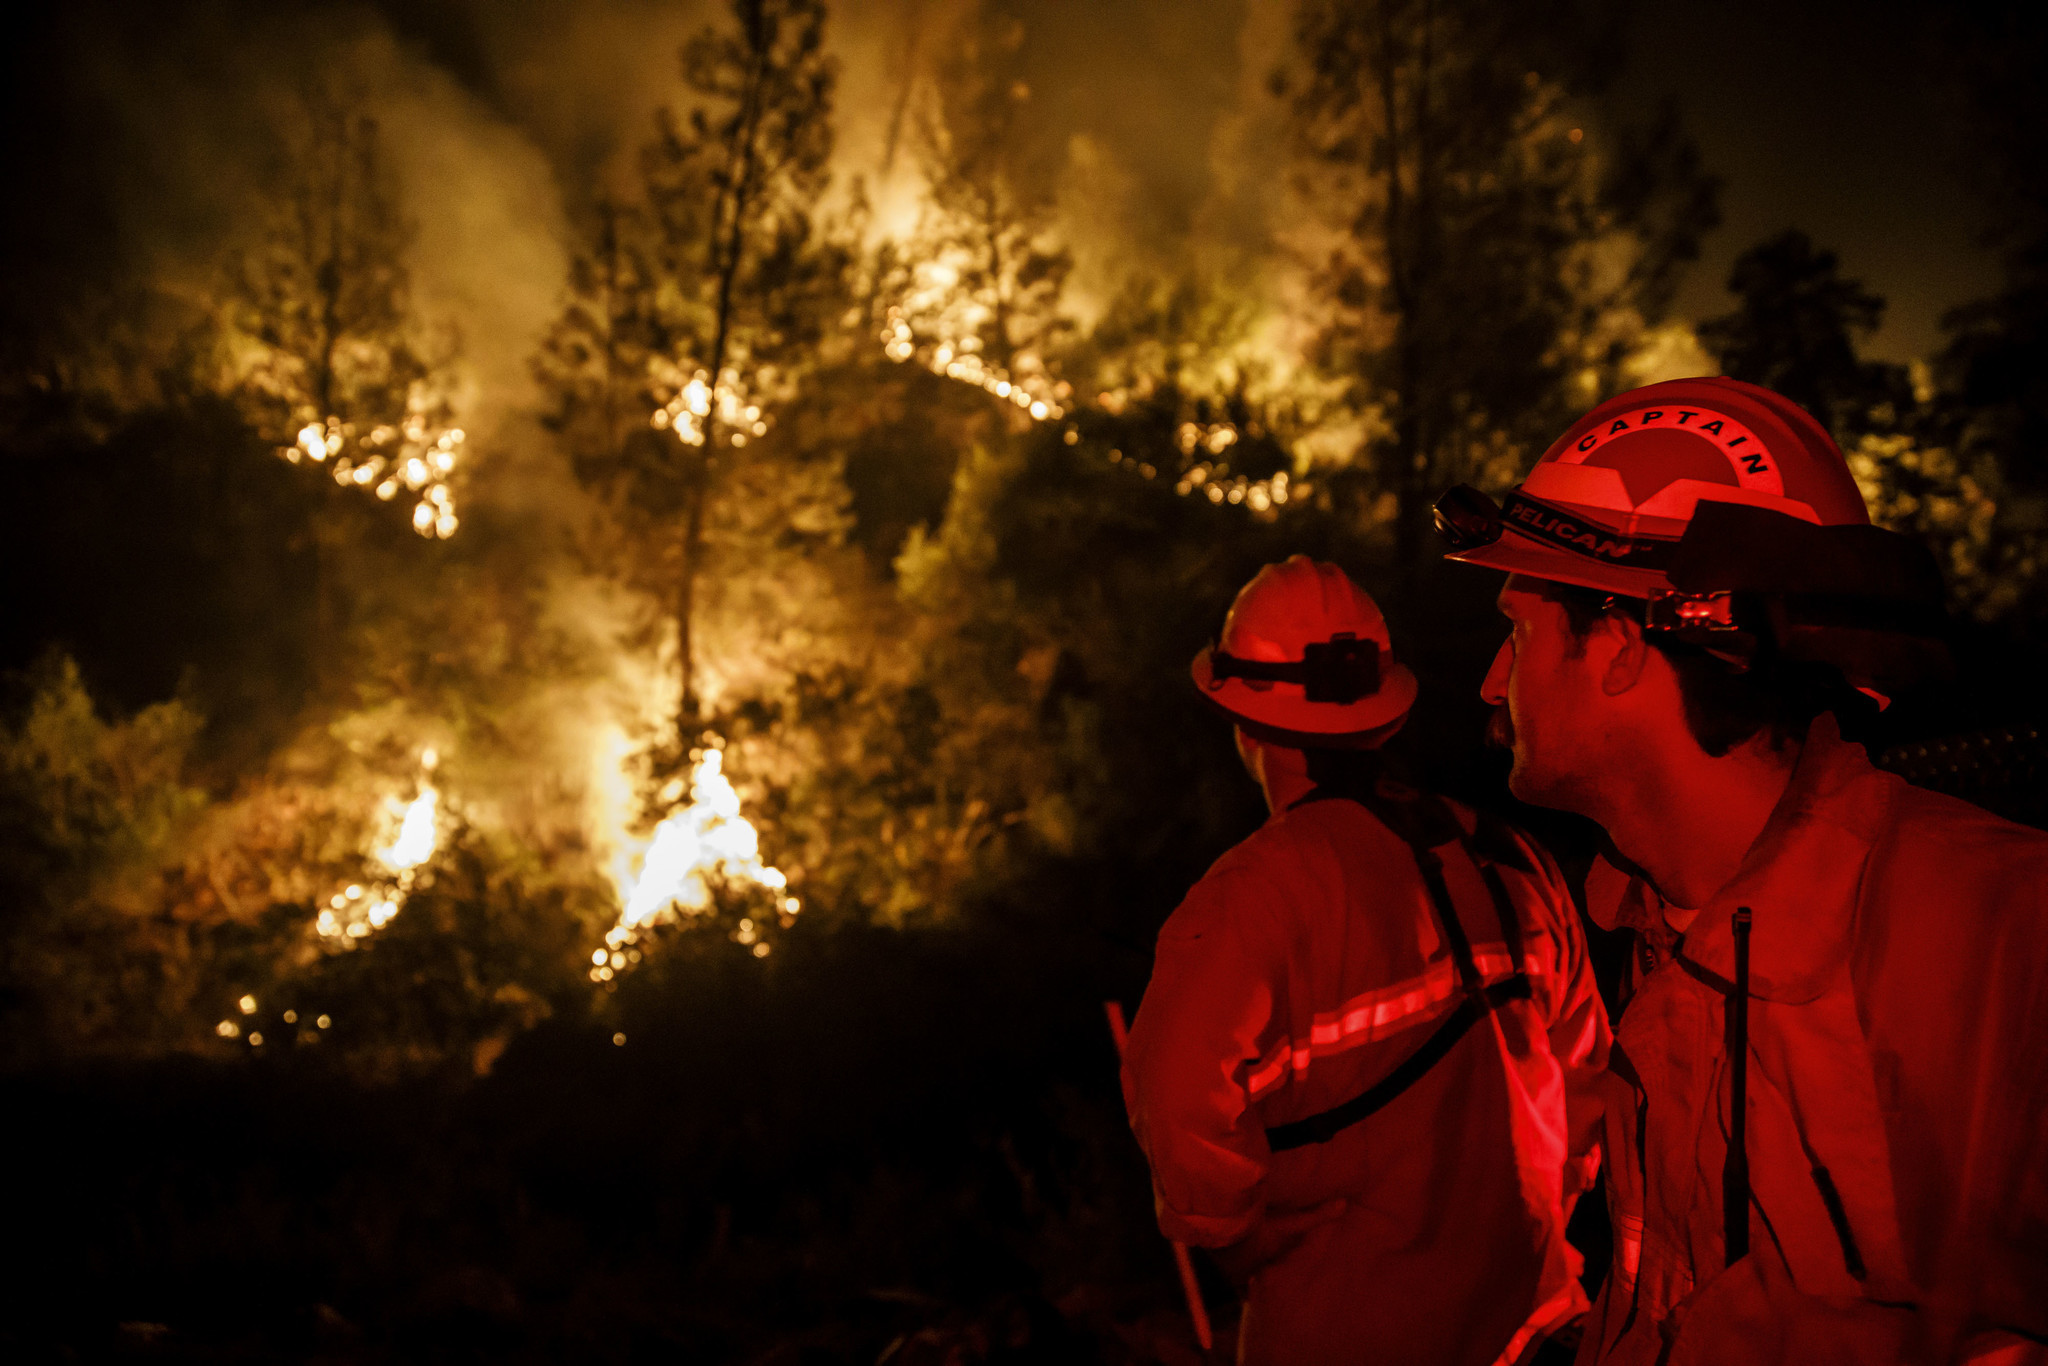 LADOGA, CALIF. — TUESDAY, AUGUST 7, 2018: Firefighters monitor a burn operation near Ladoga, Calif.